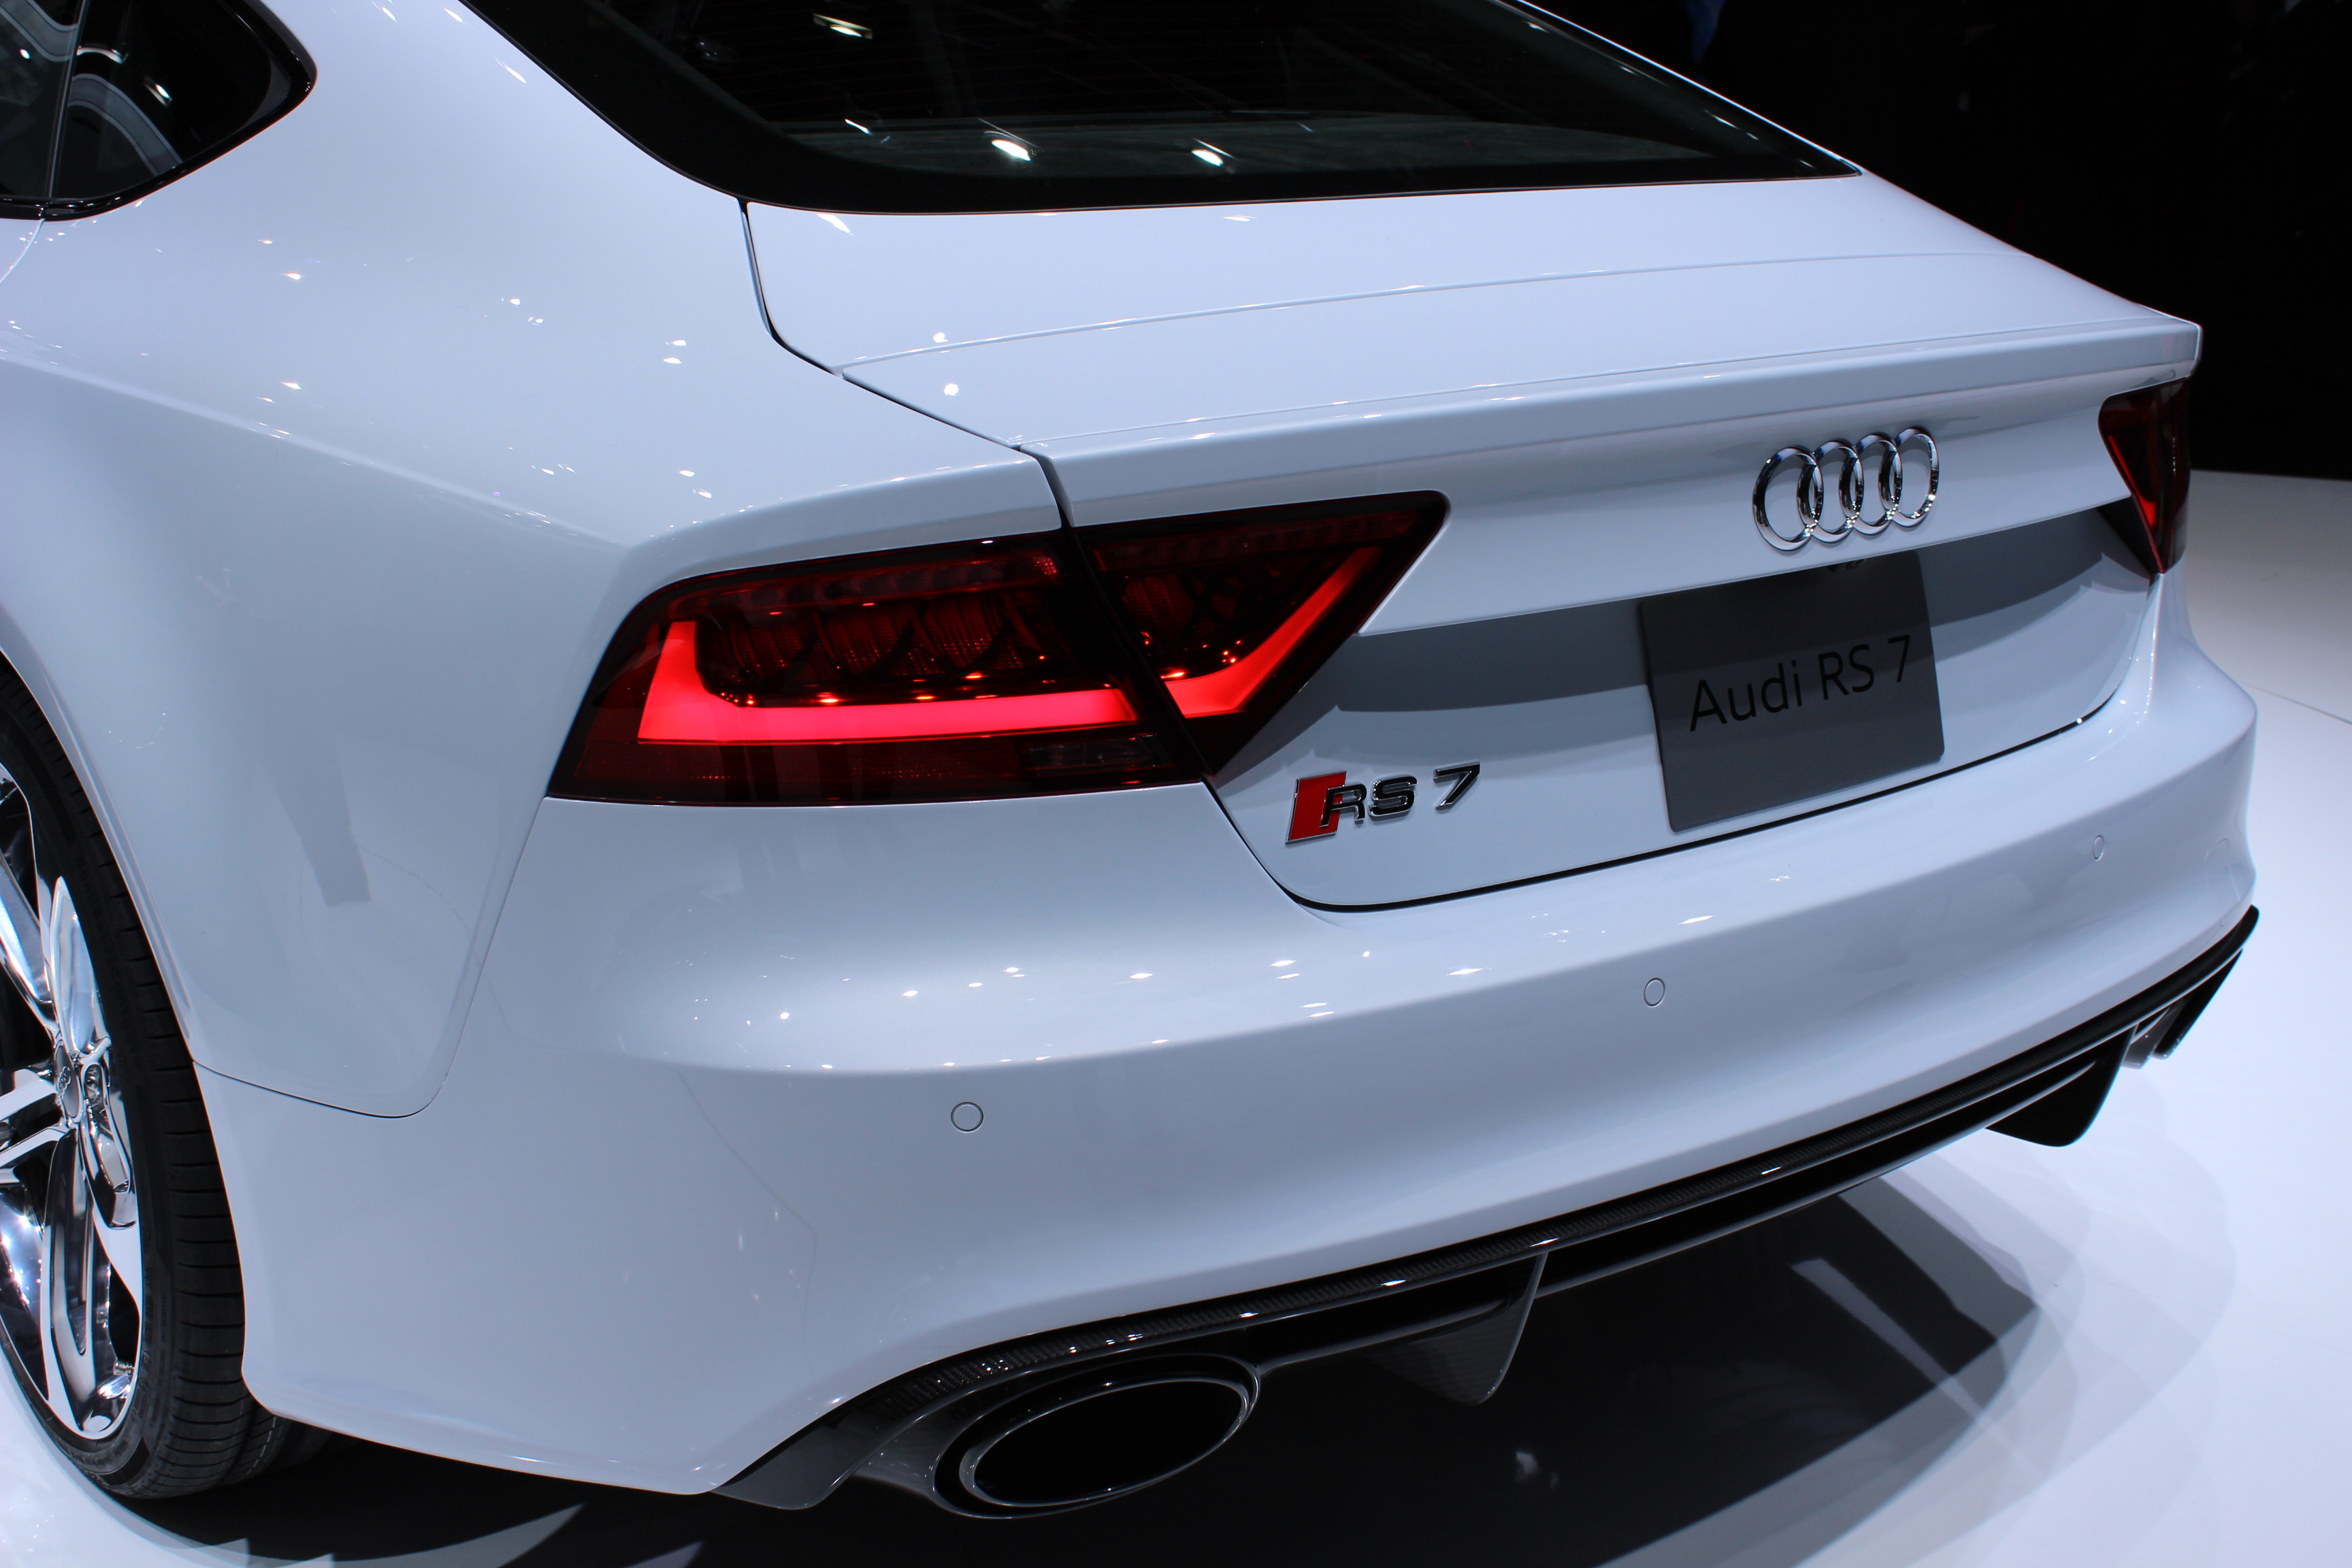 Audi RS7 engine #2